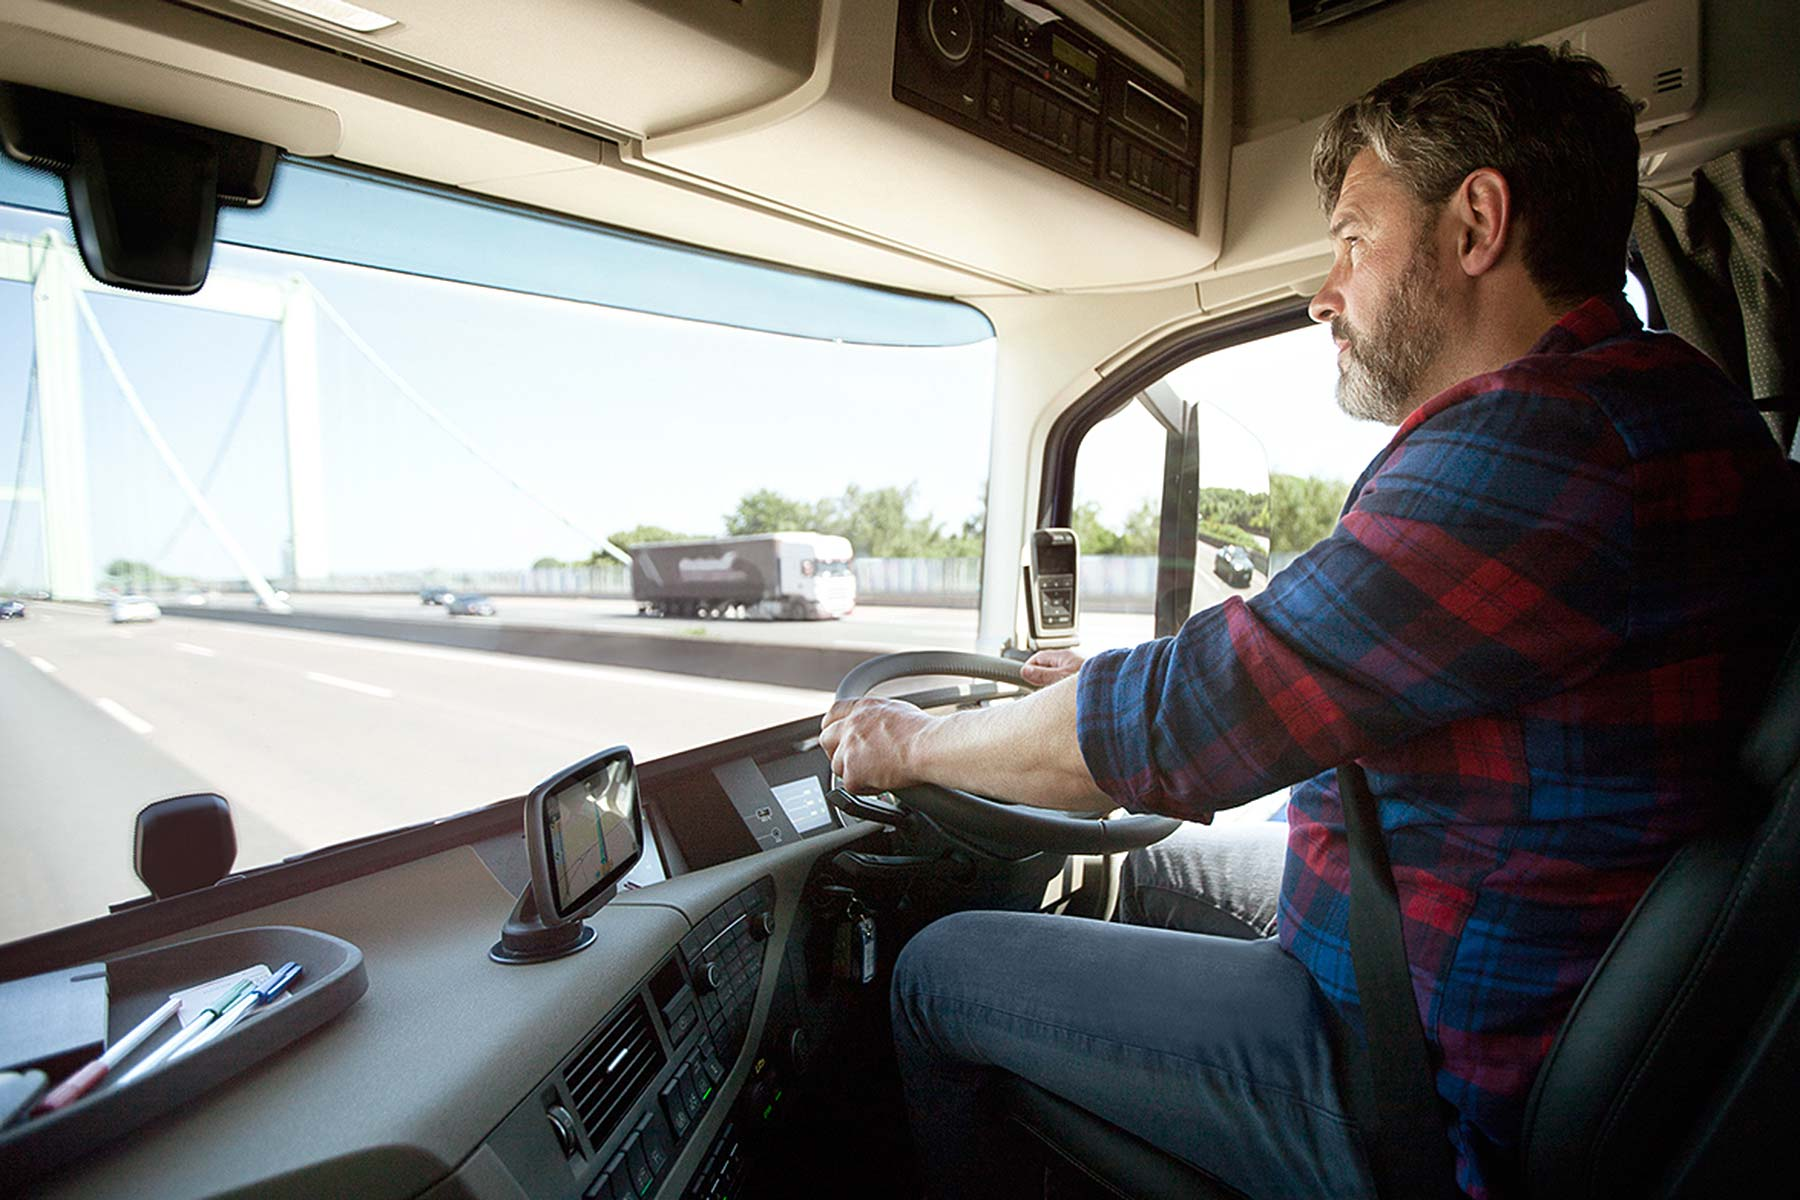 A trucker on the road